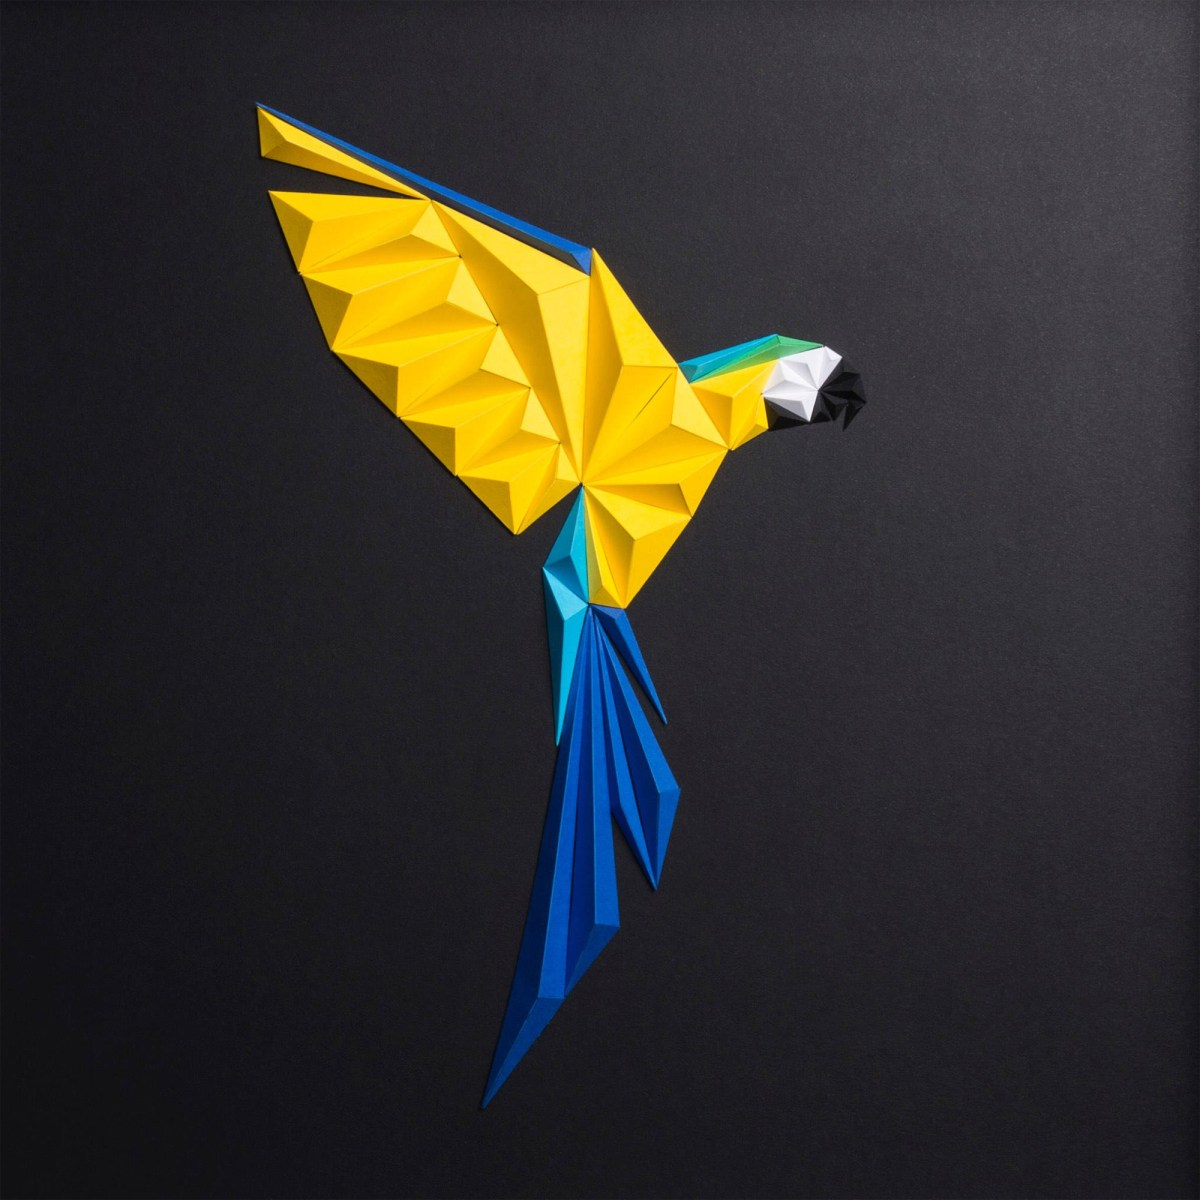 Paper Parrots and Other Folded Paper Art